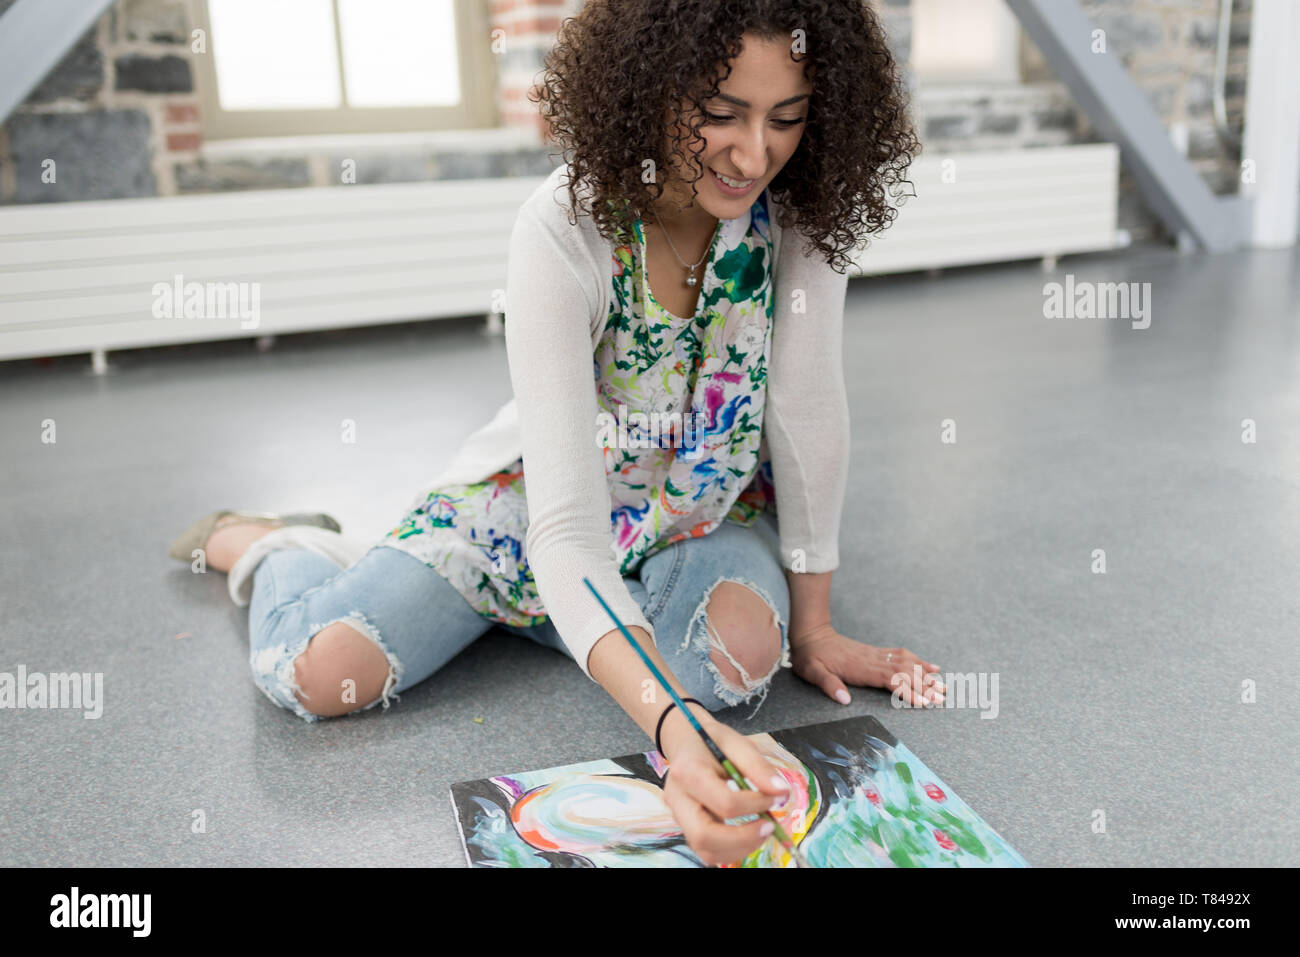 Young female painter painting canvas on studio floor - Stock Image